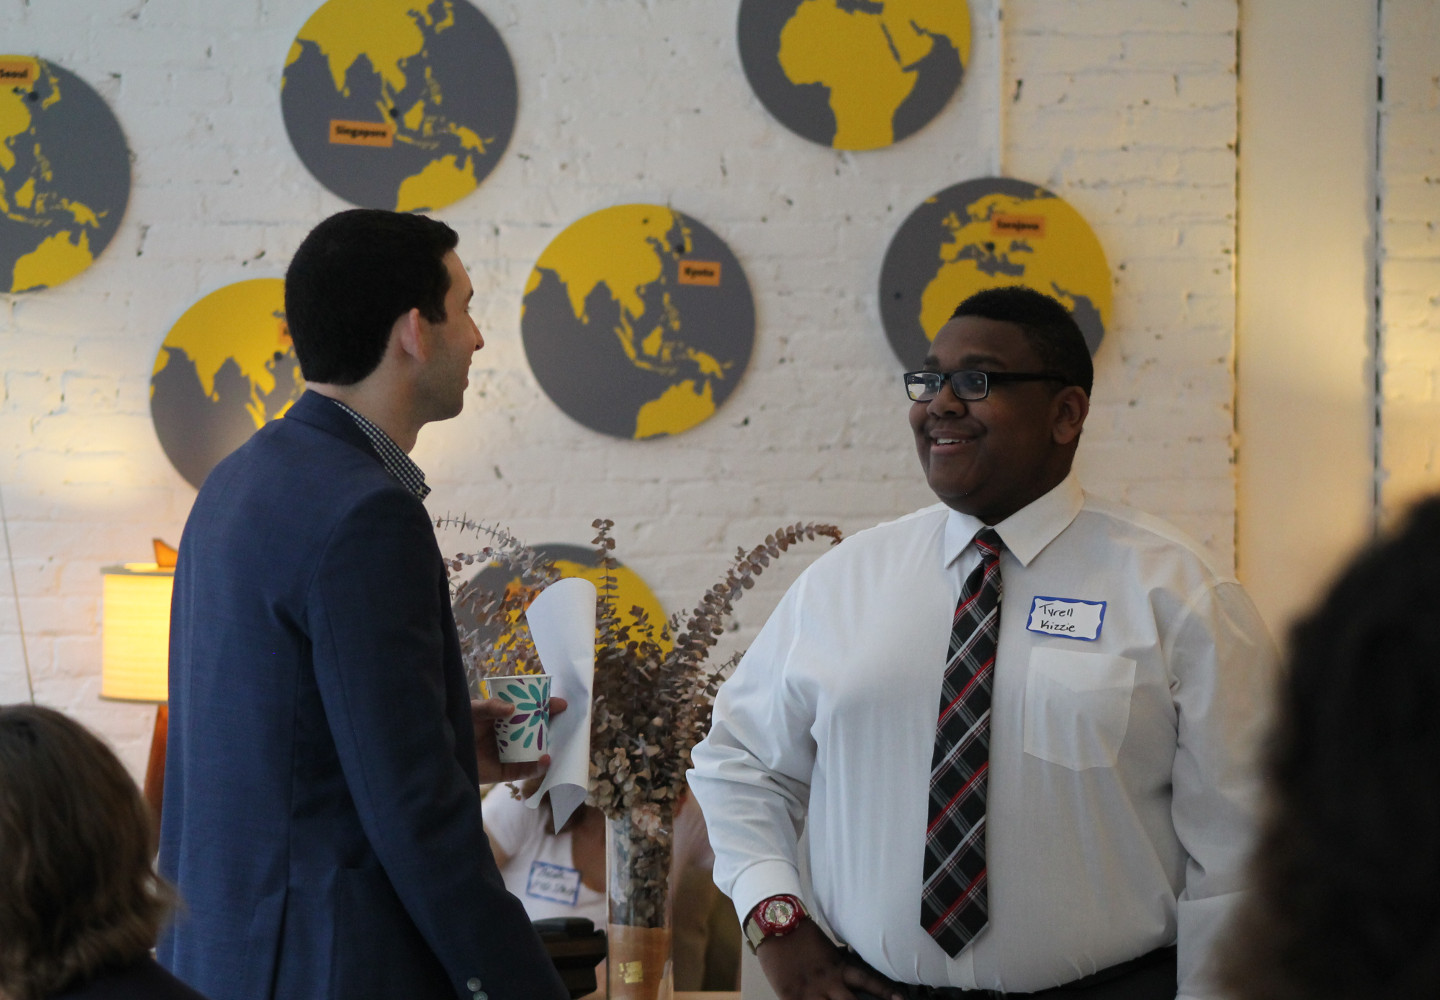 Young black man in a dress shirt and tie talks with a young white professional in a business coat